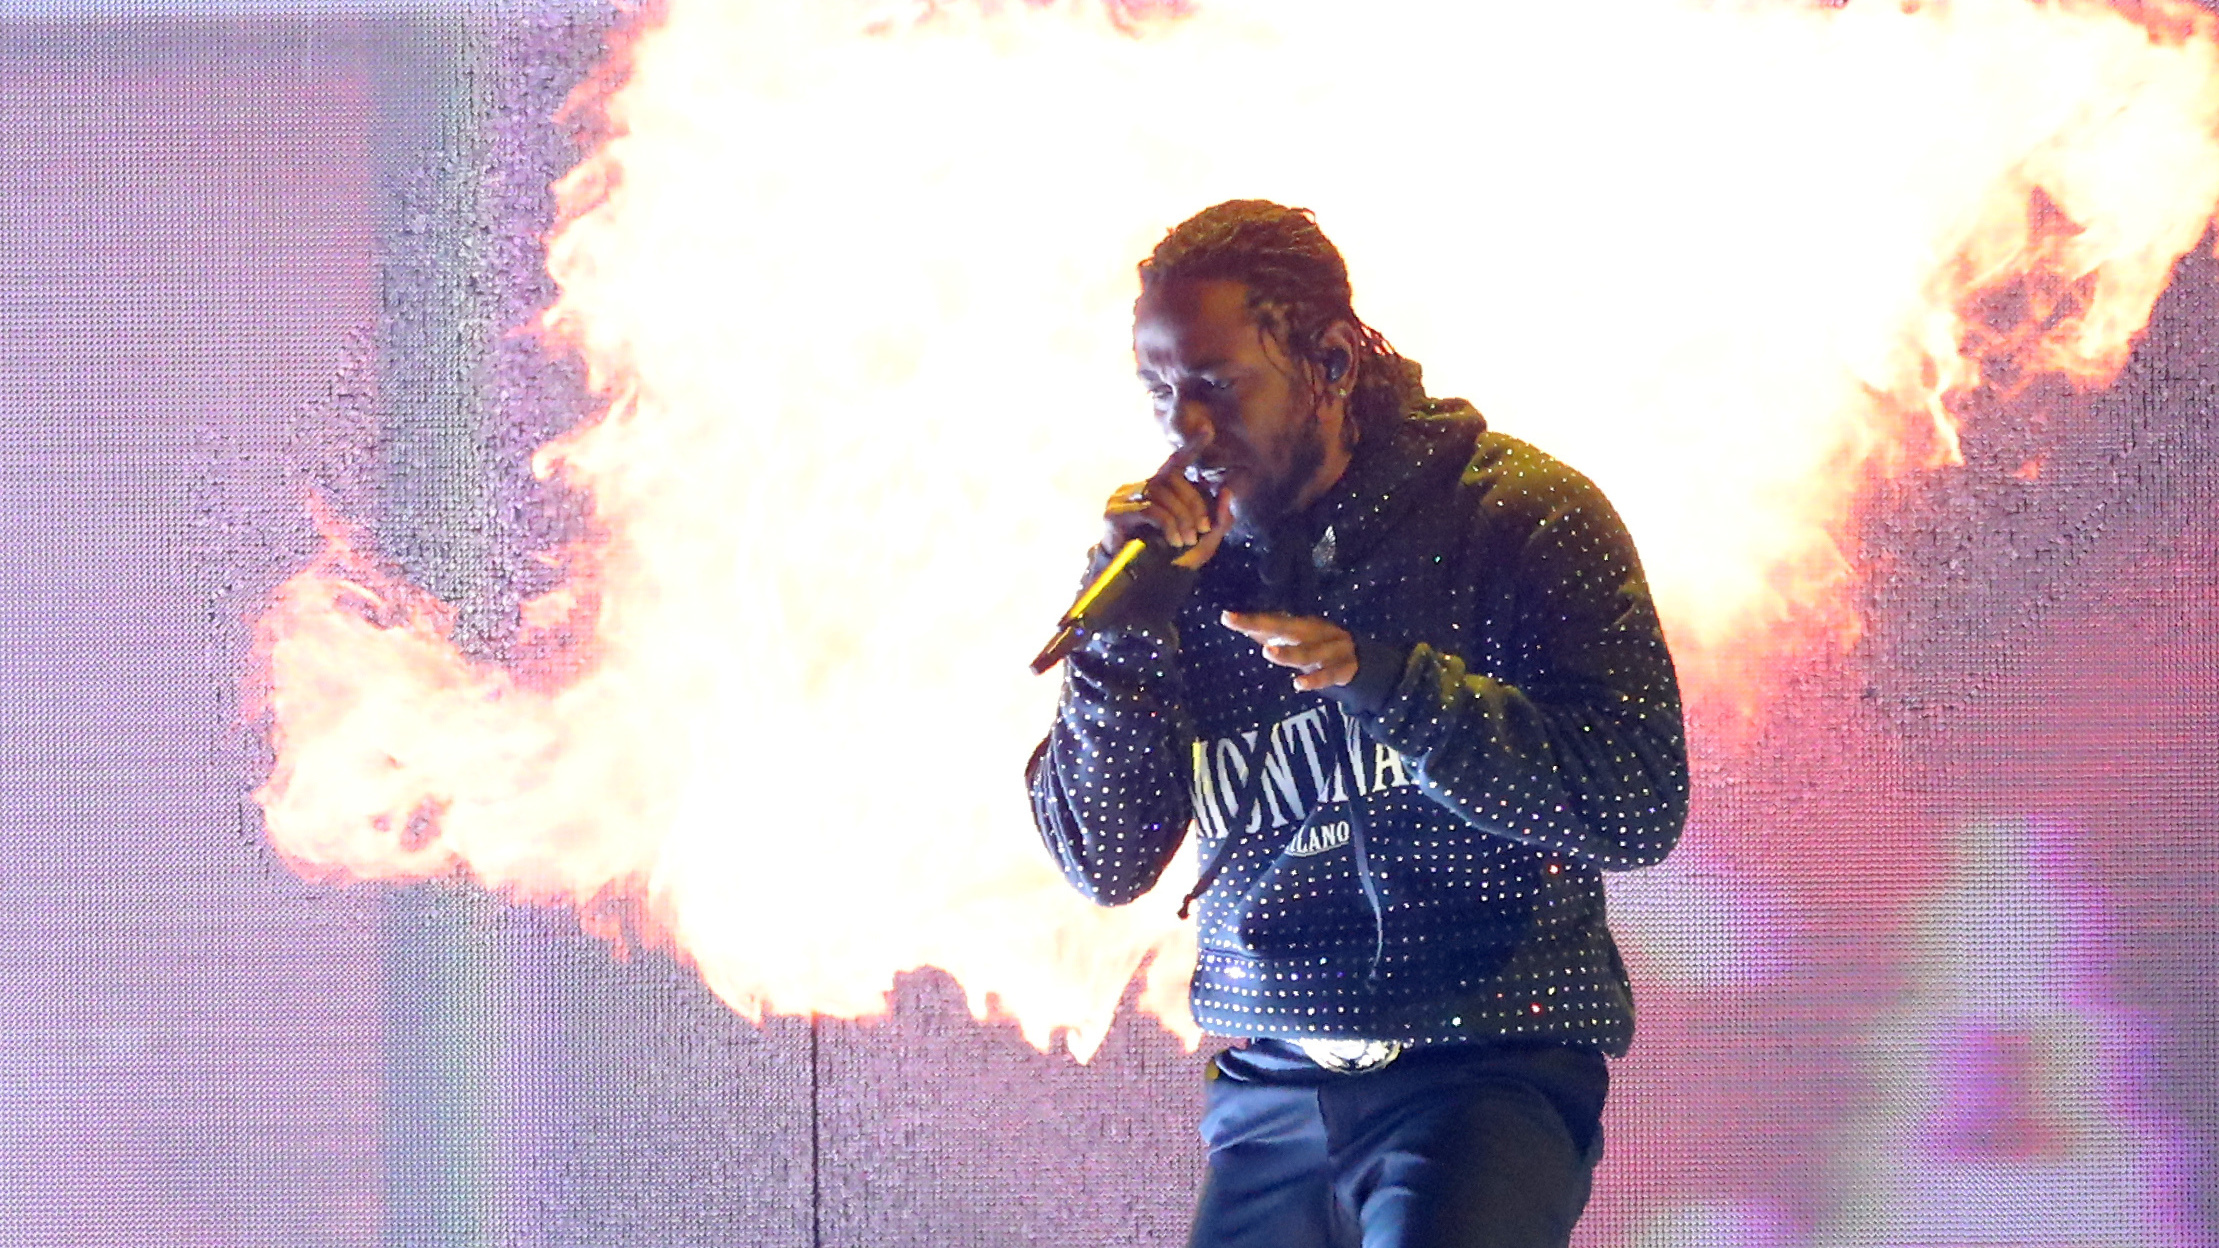 DAMN: Kendrick Lamar becomes first rapper to win a Pulitzer Prize